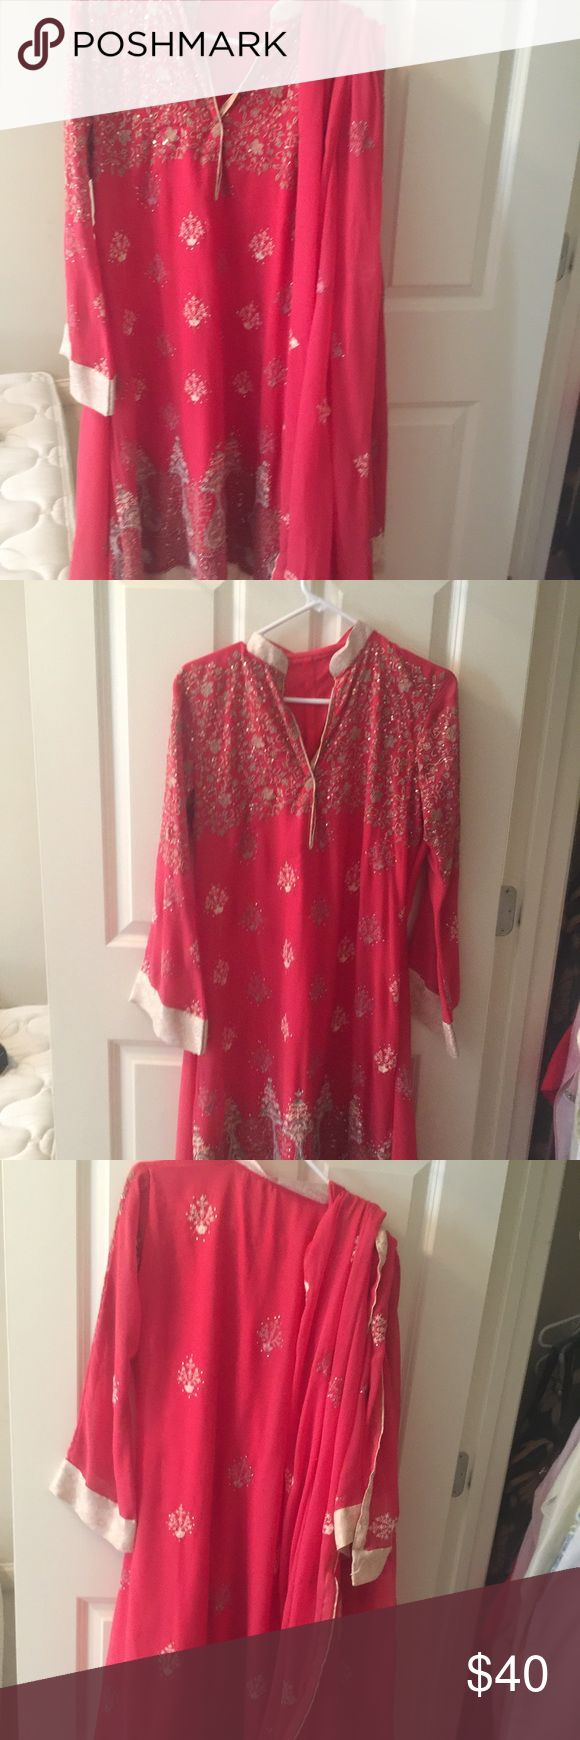 Beautiful Pakistani dress Willing to give decent price Dresses Long Sleeve